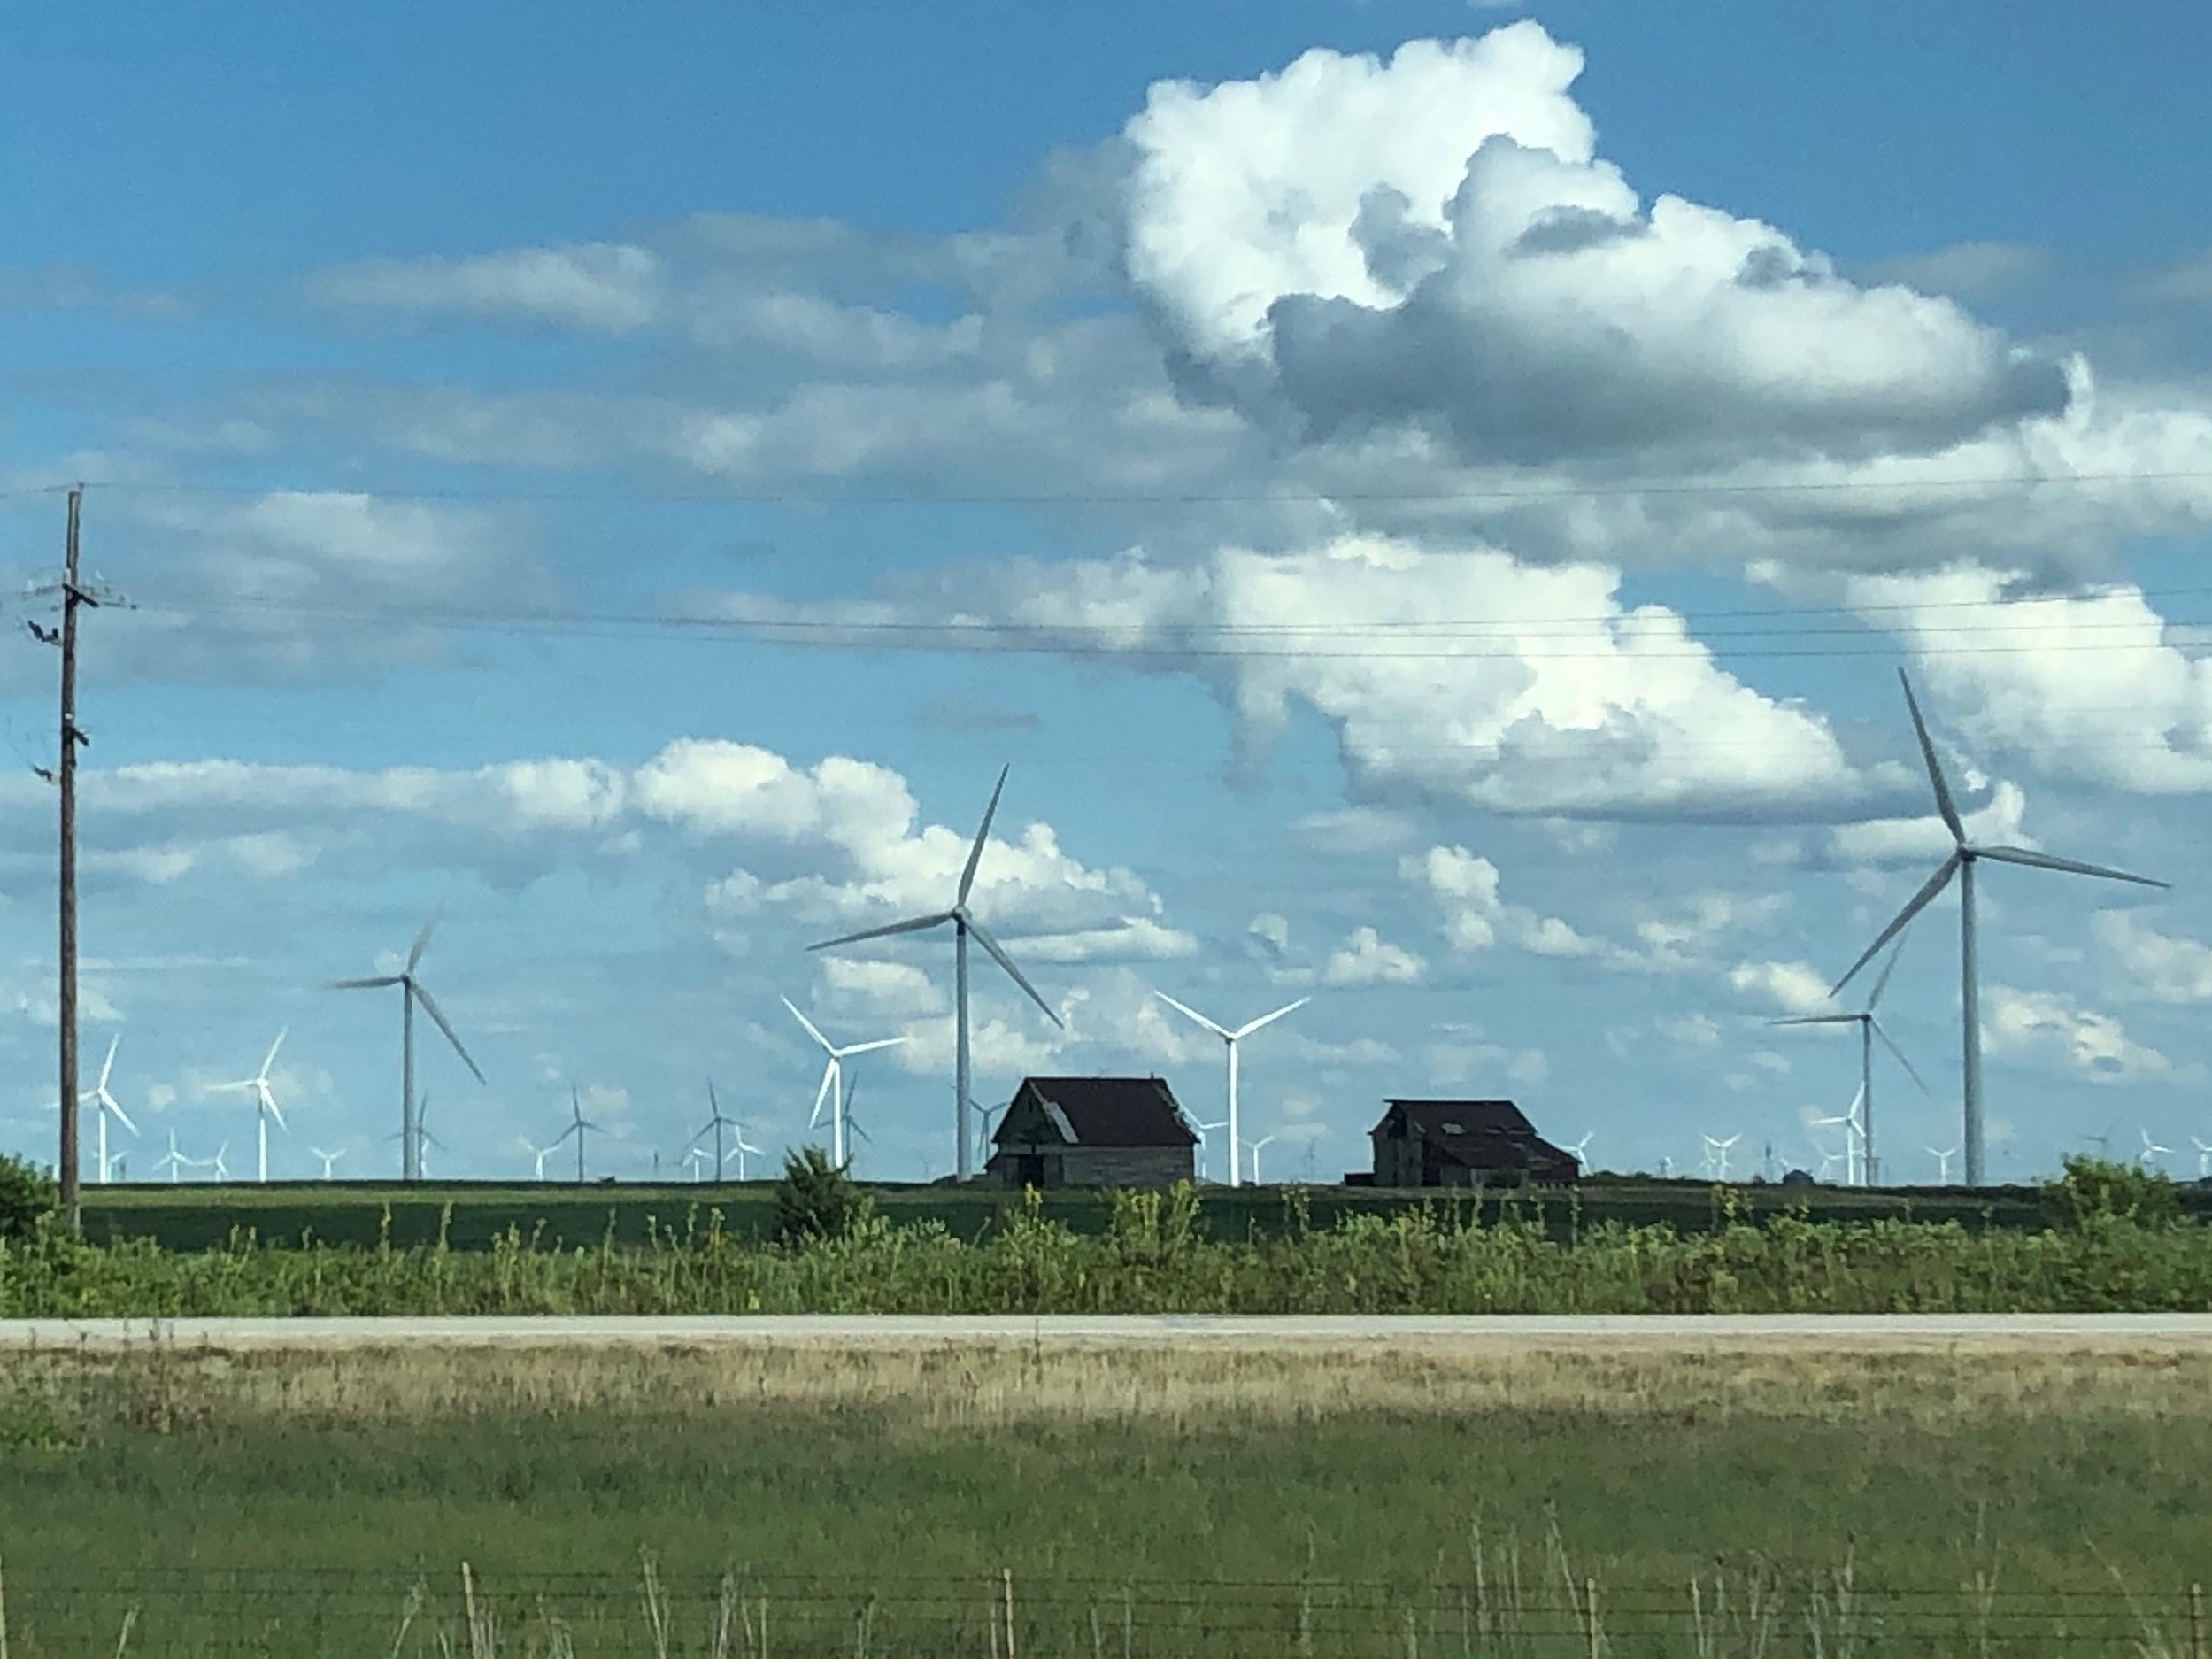 Wind farms and farms coexist in Illinois. (One Illinois/Ted Cox)